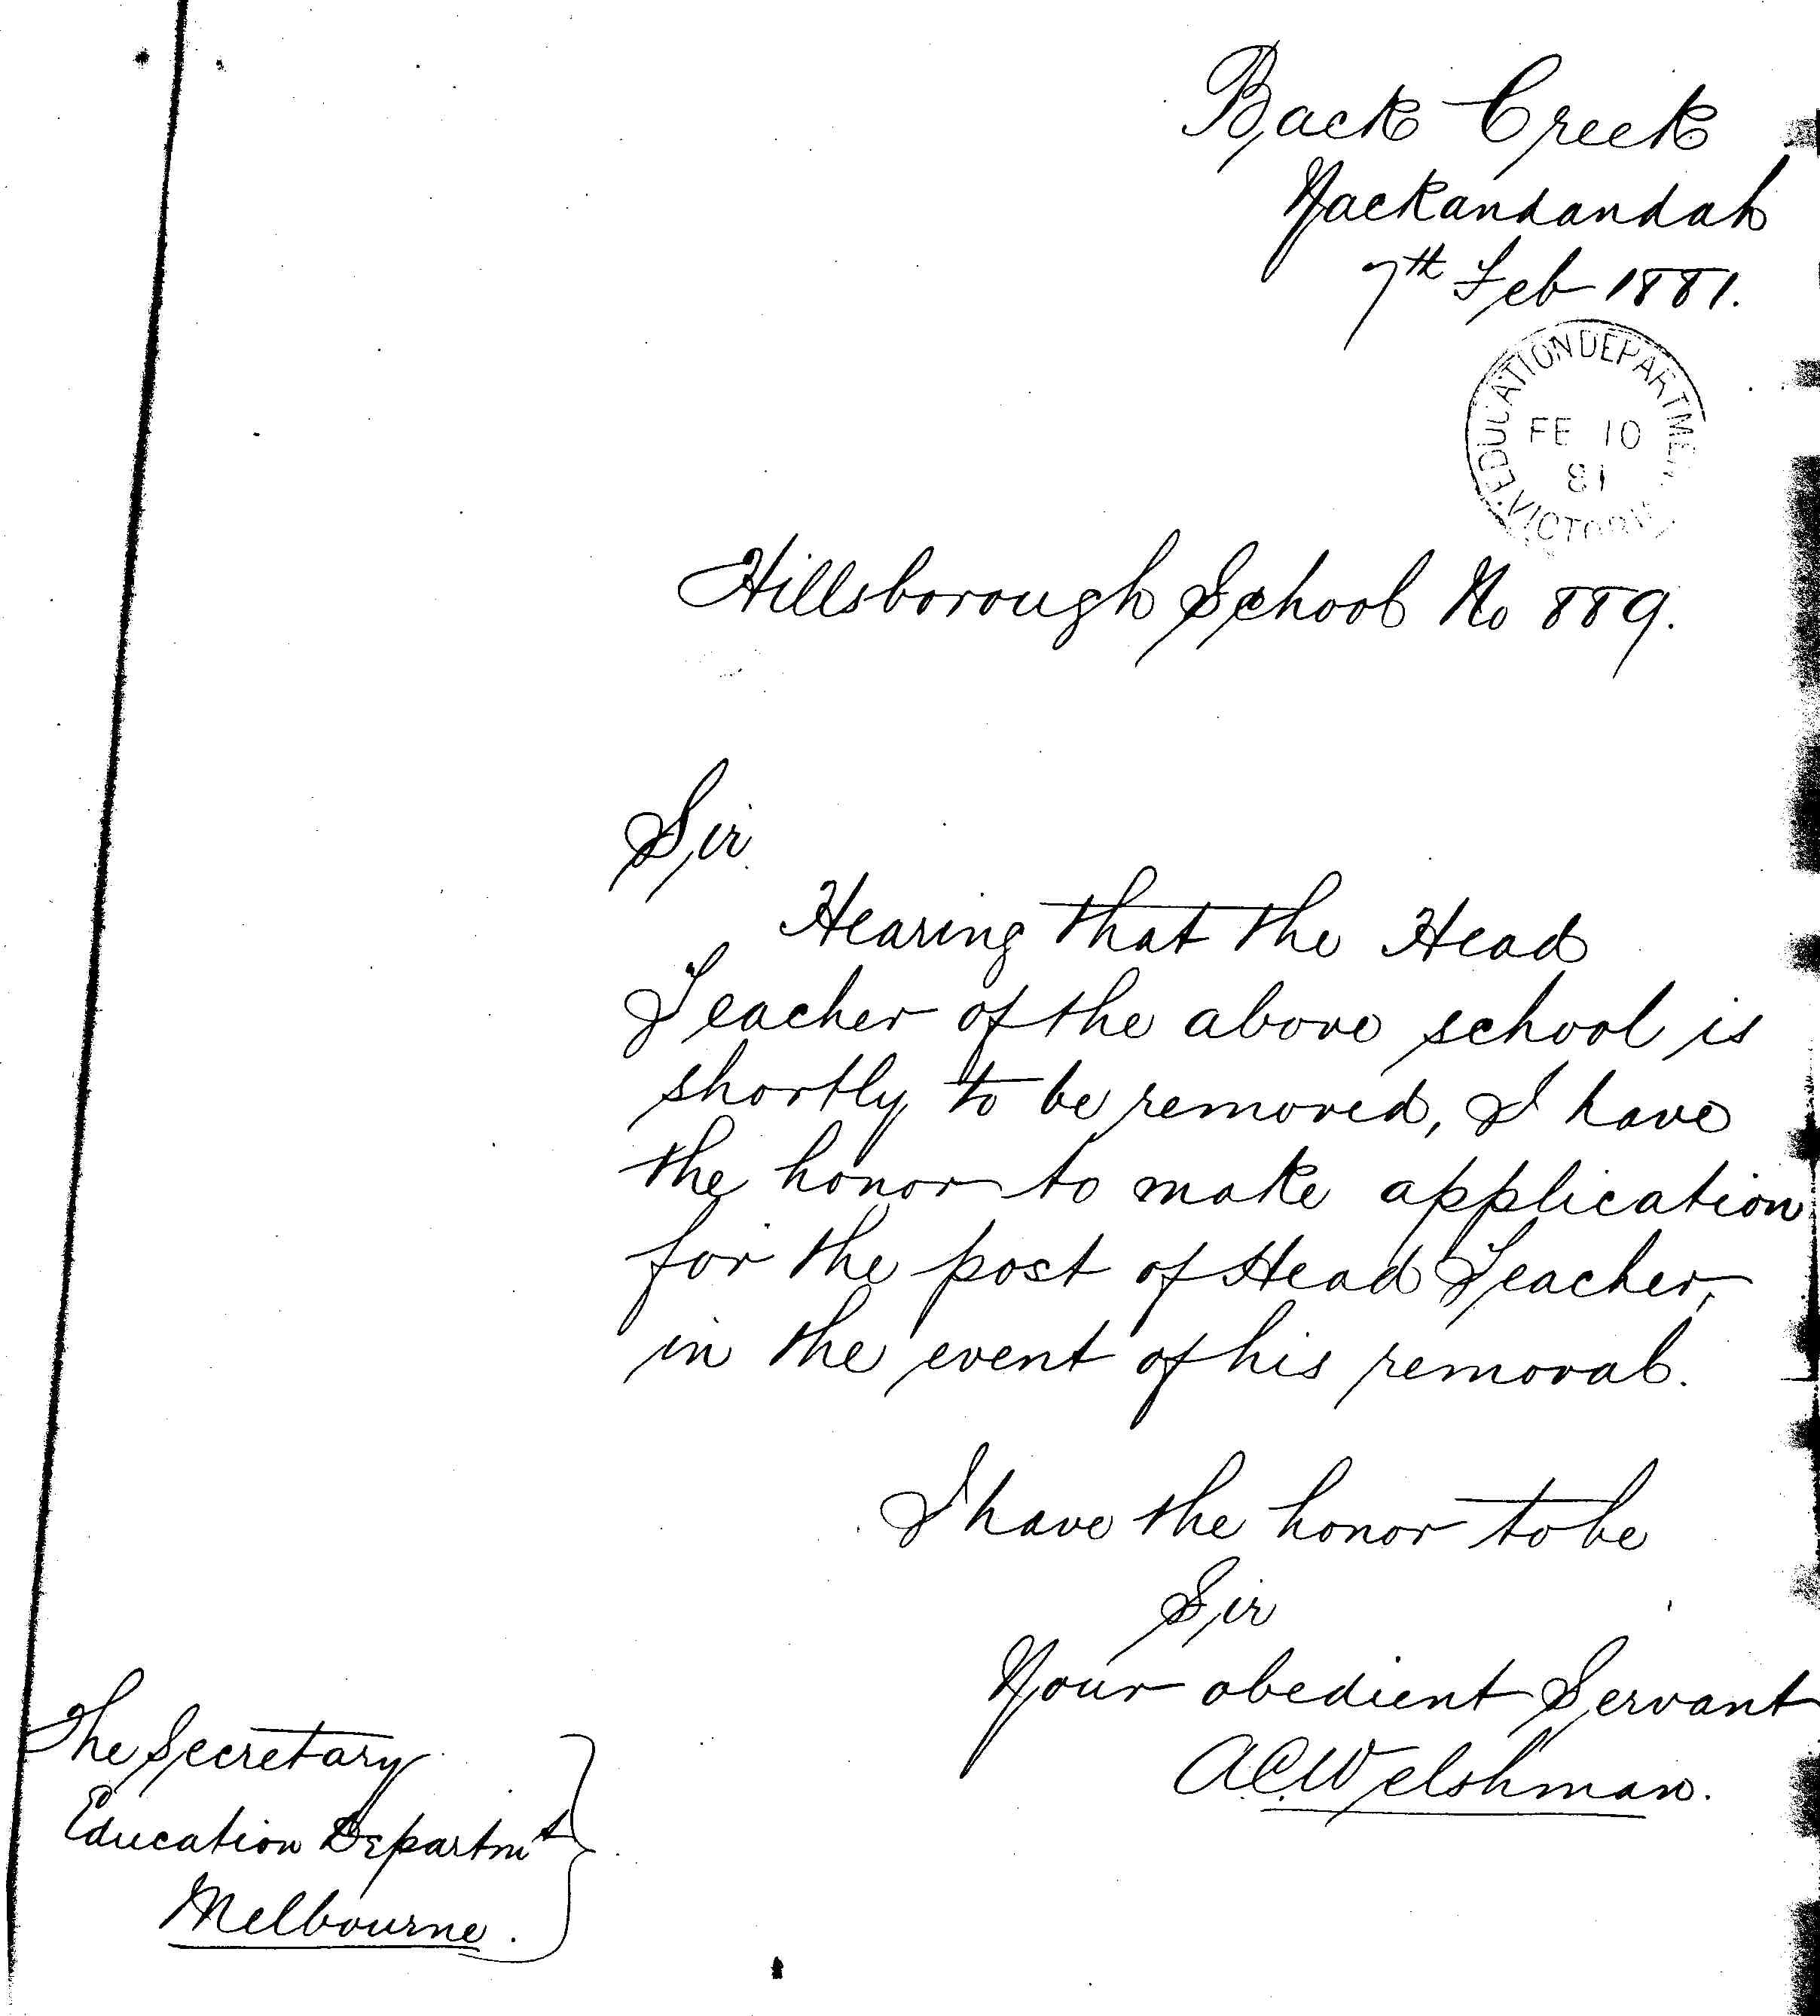 24 mar 1881 mrs vales resignation as sewing mistress